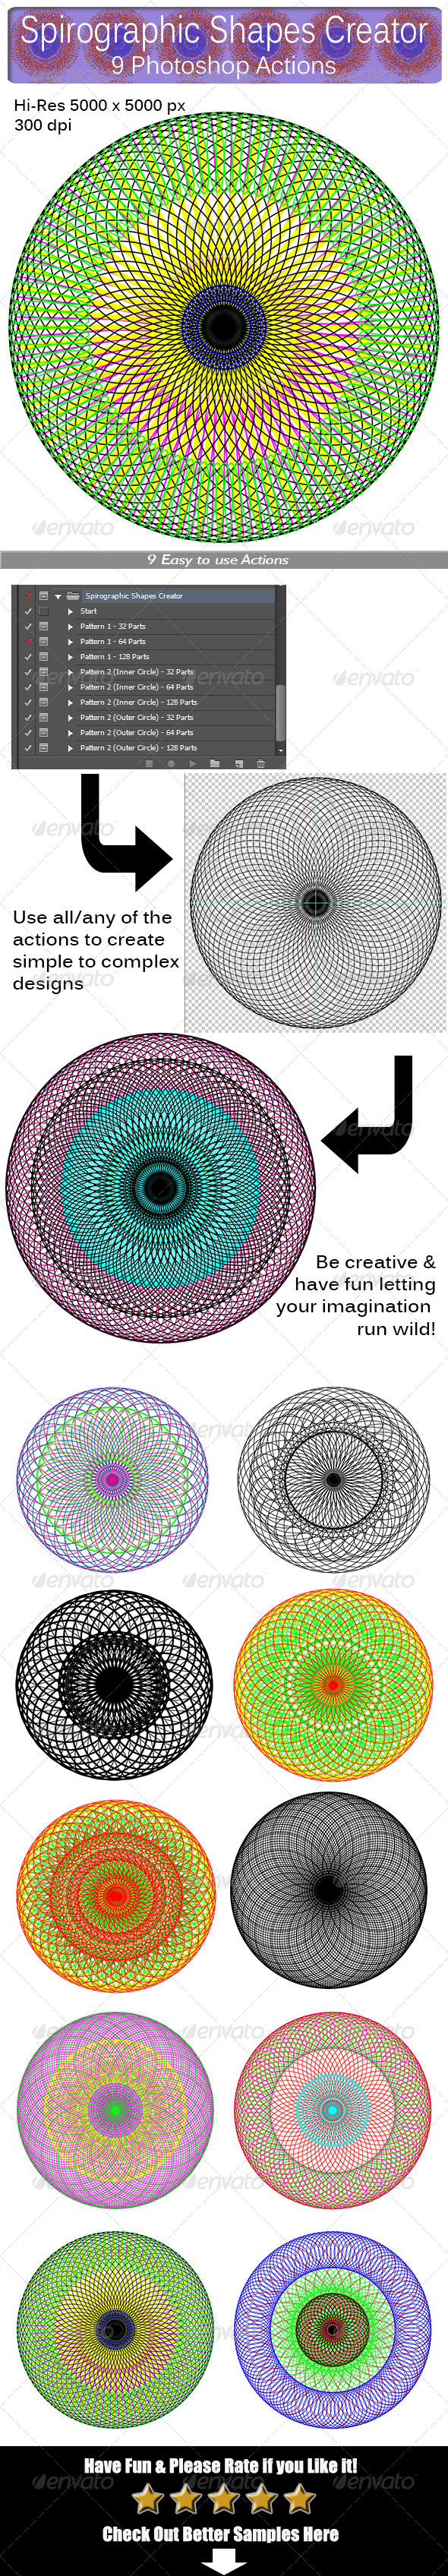 GraphicRiver Spirographic Shapes Creator 8694462